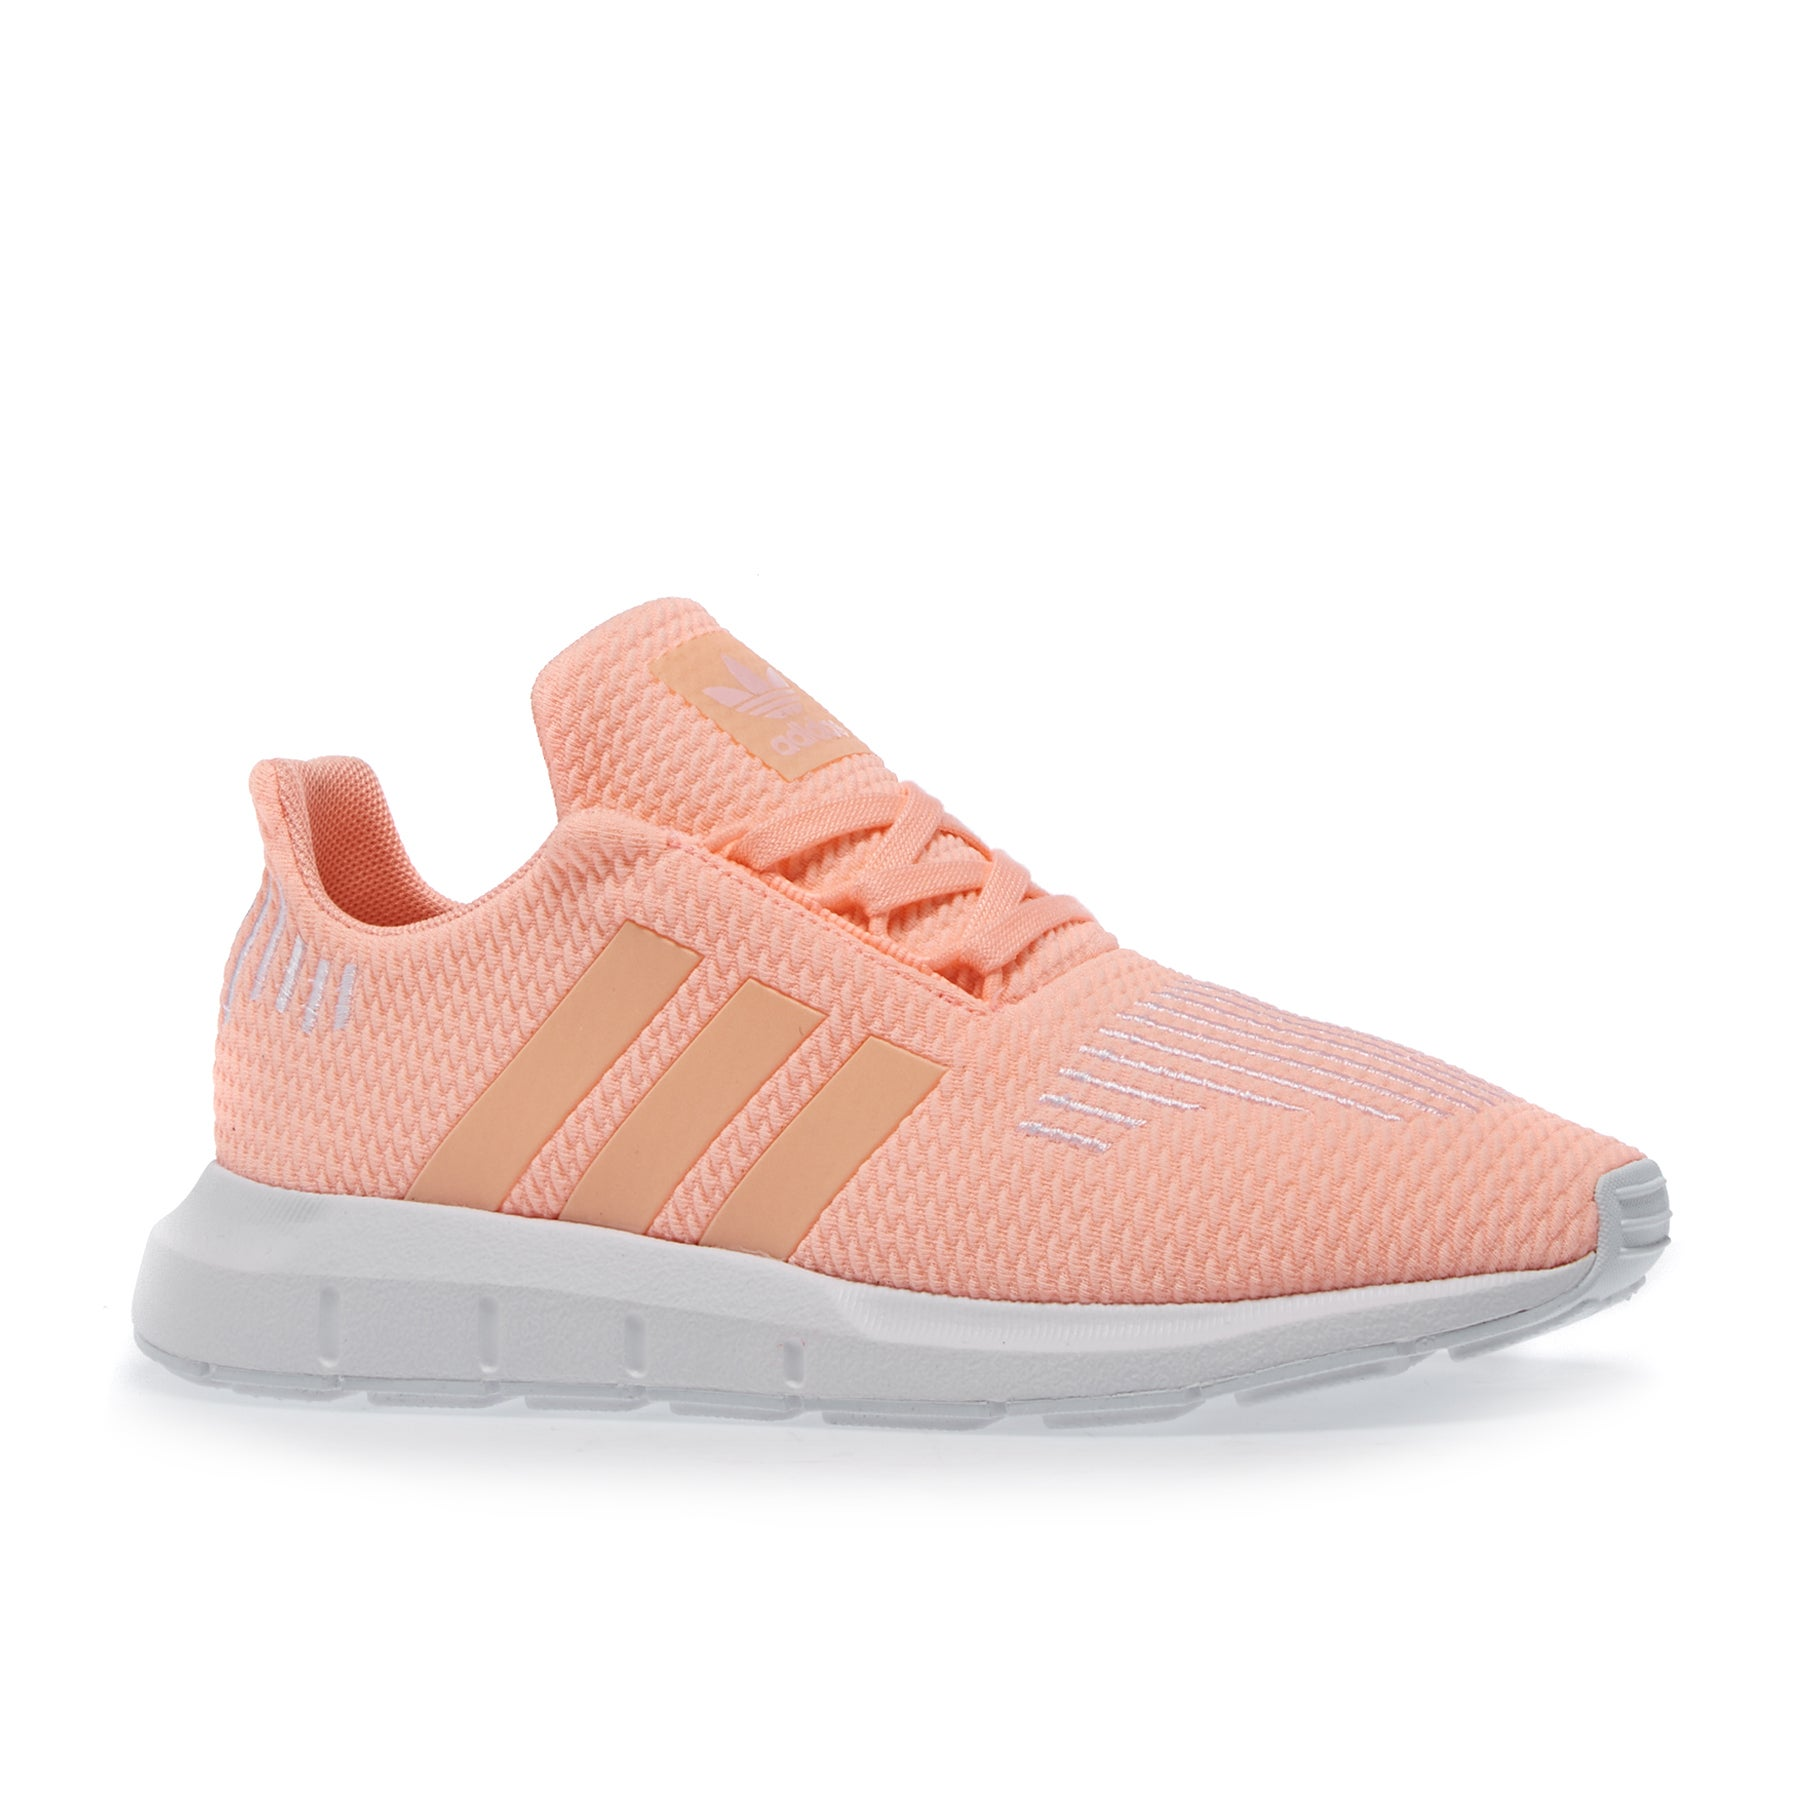 a0872fb19 Adidas Originals Swift Run C Kids Shoes available from Surfdome